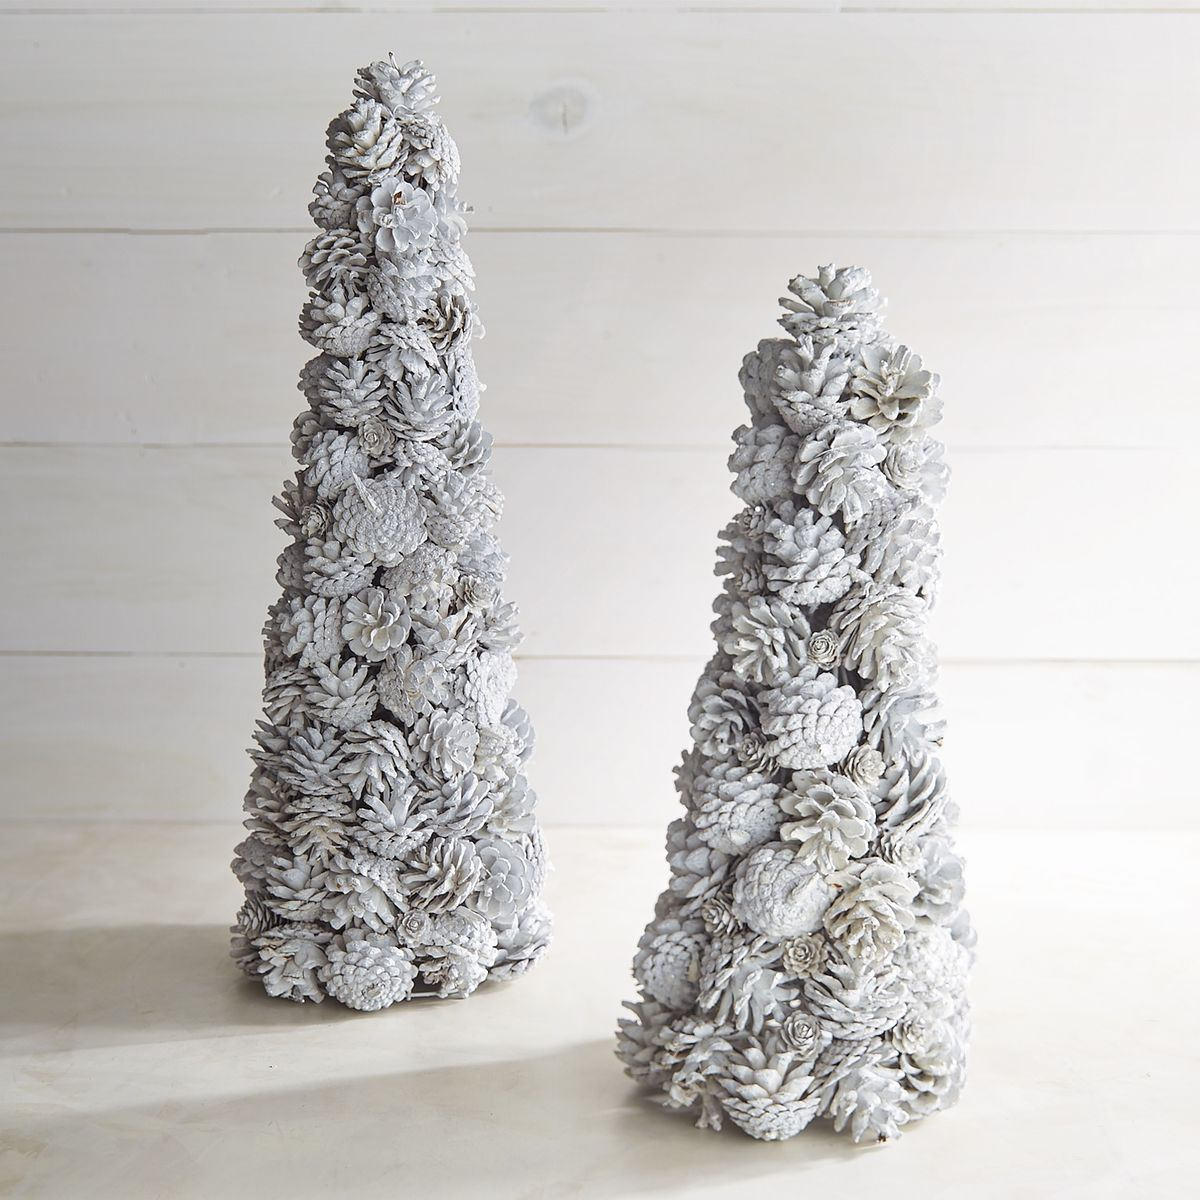 50 DIY Mini Christmas Trees - Prudent Penny Pincher